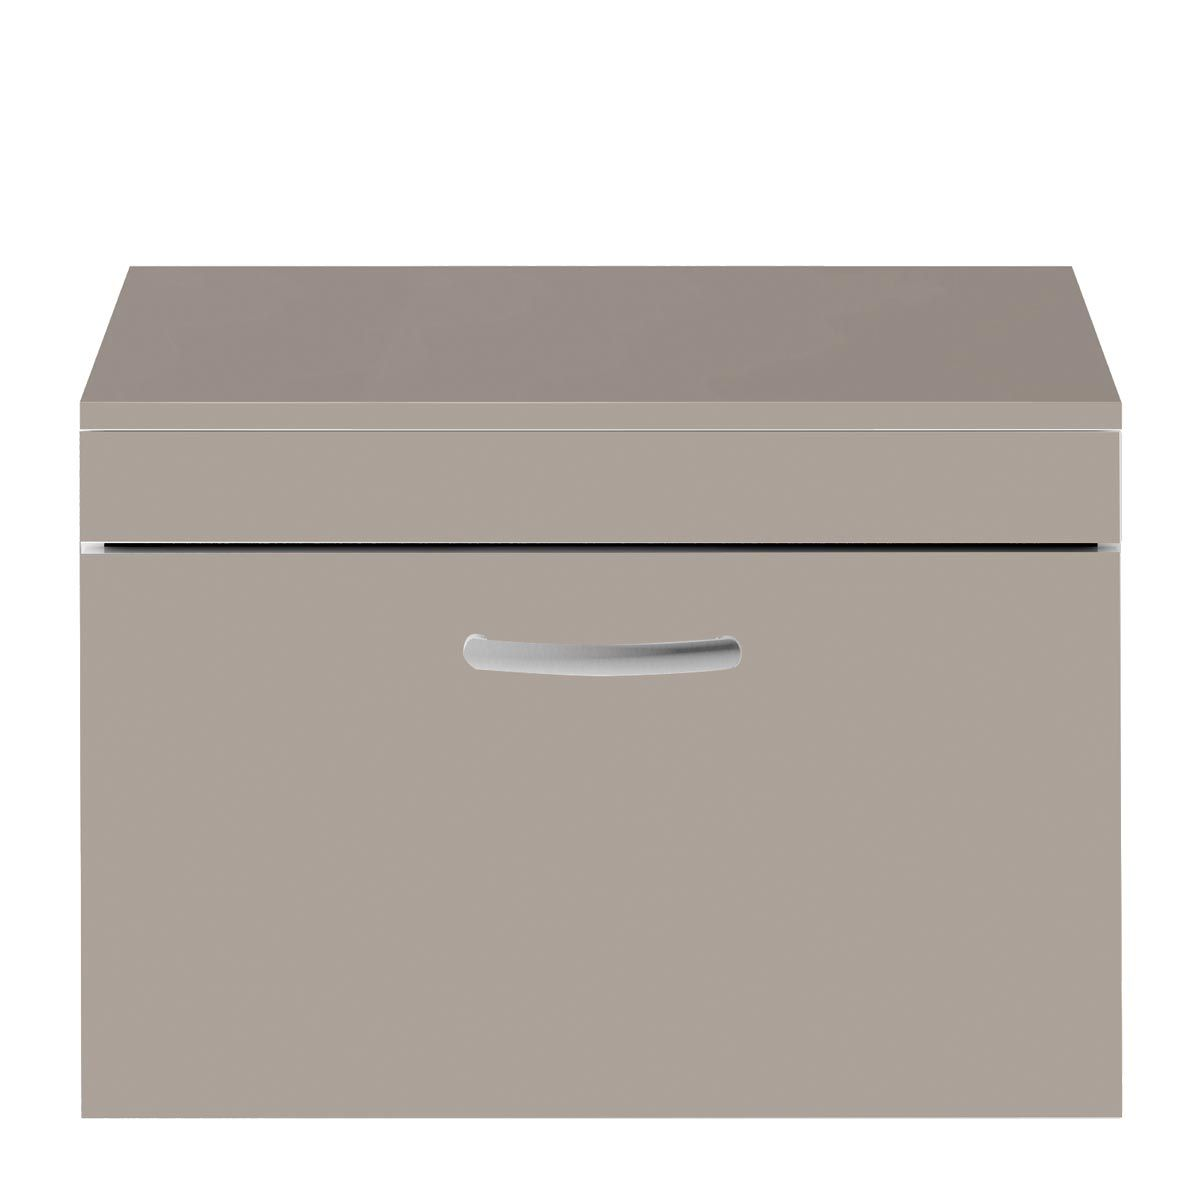 Nuie Athena Stone Grey 1 Drawer Wall Hung Vanity Unit with 18mm Worktop 800mm